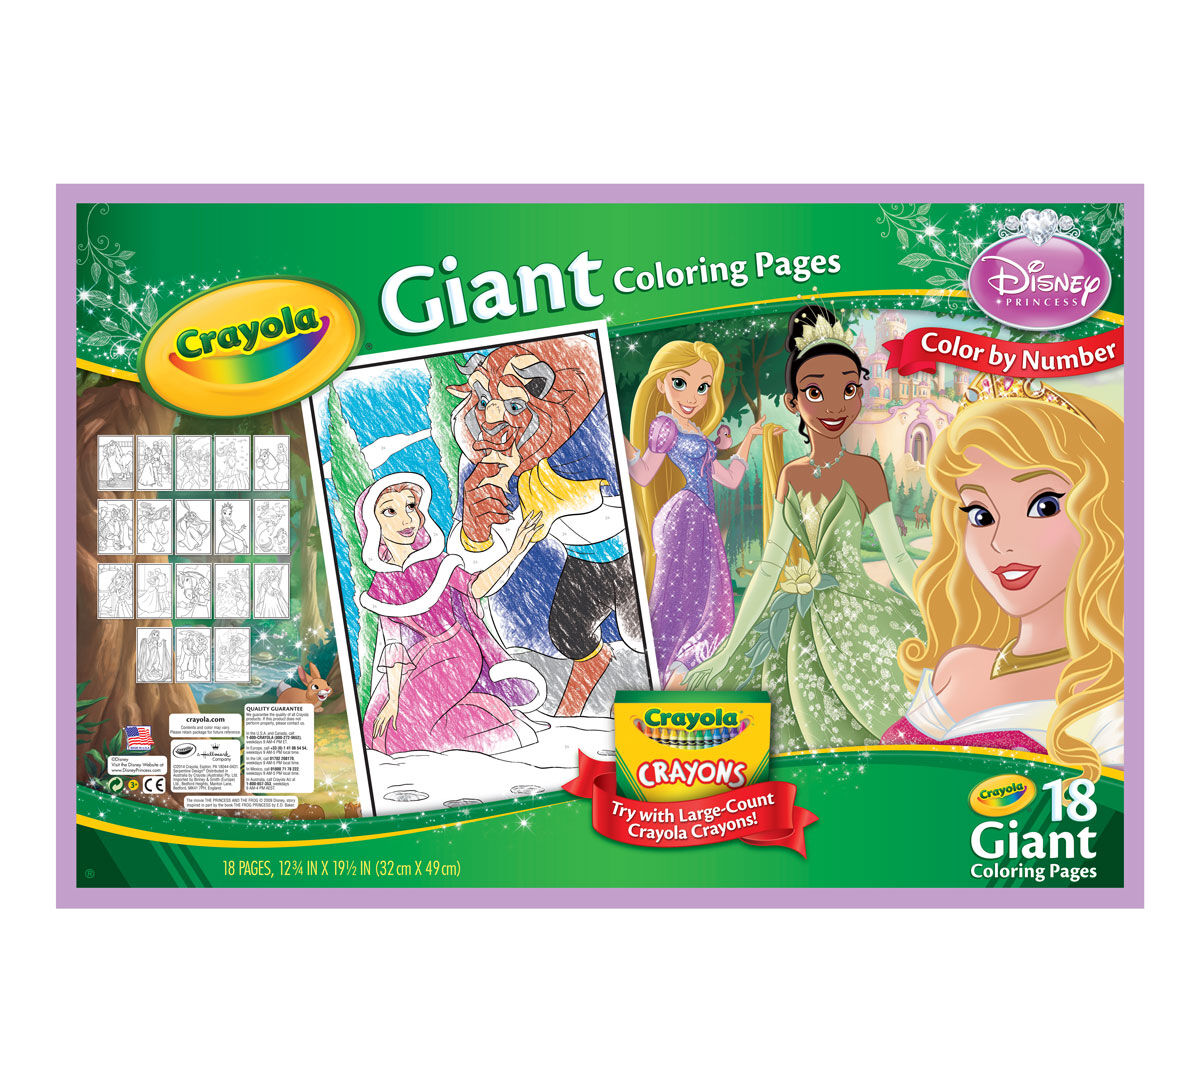 Giant Coloring Pages - Disney Princess - Crayola